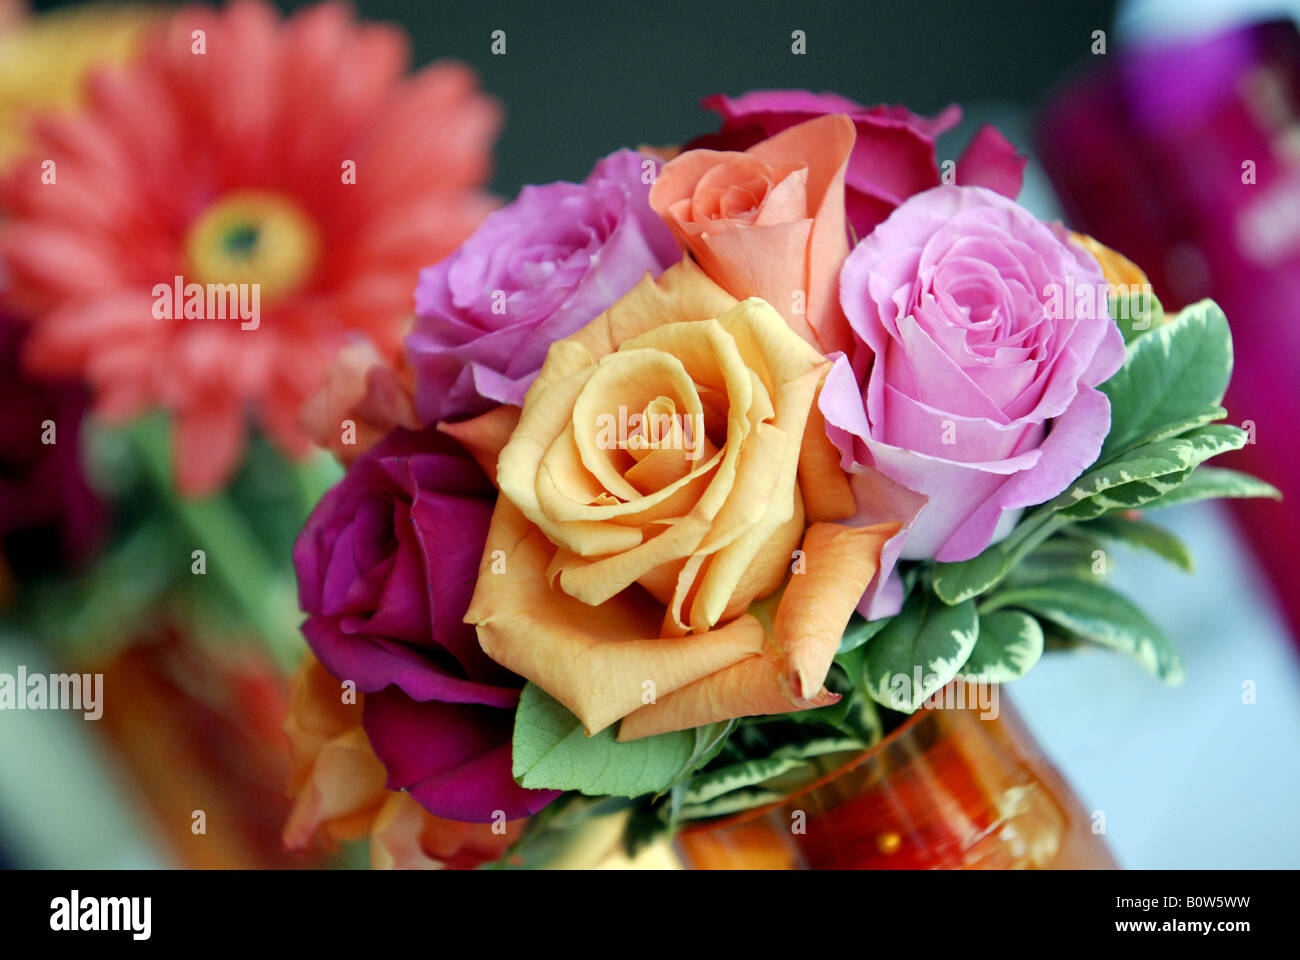 Pink, orange, red and purple roses used as wedding flowers - Stock Image